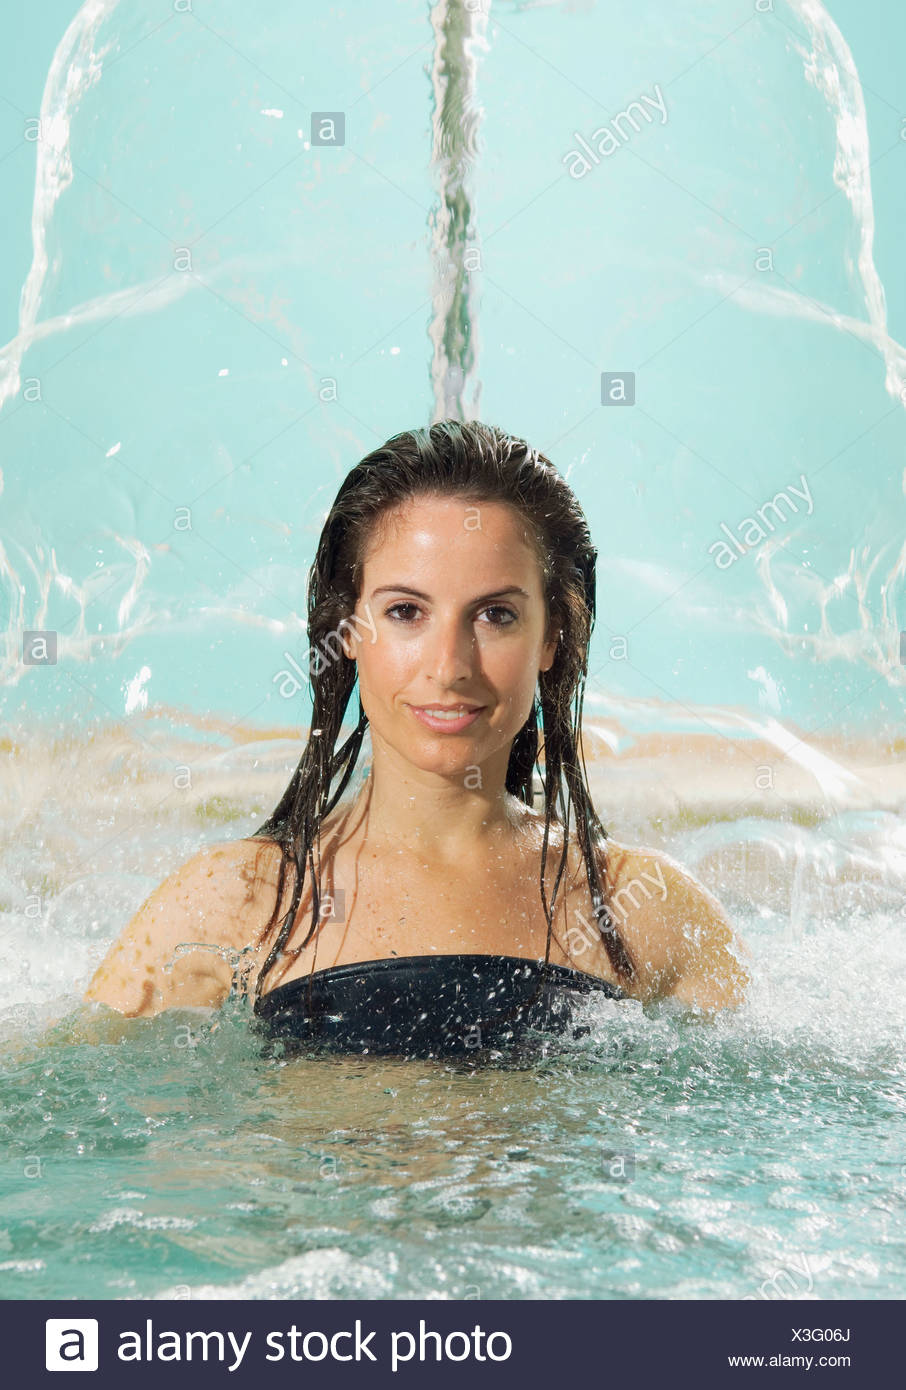 Young woman in hot tub - Stock Image